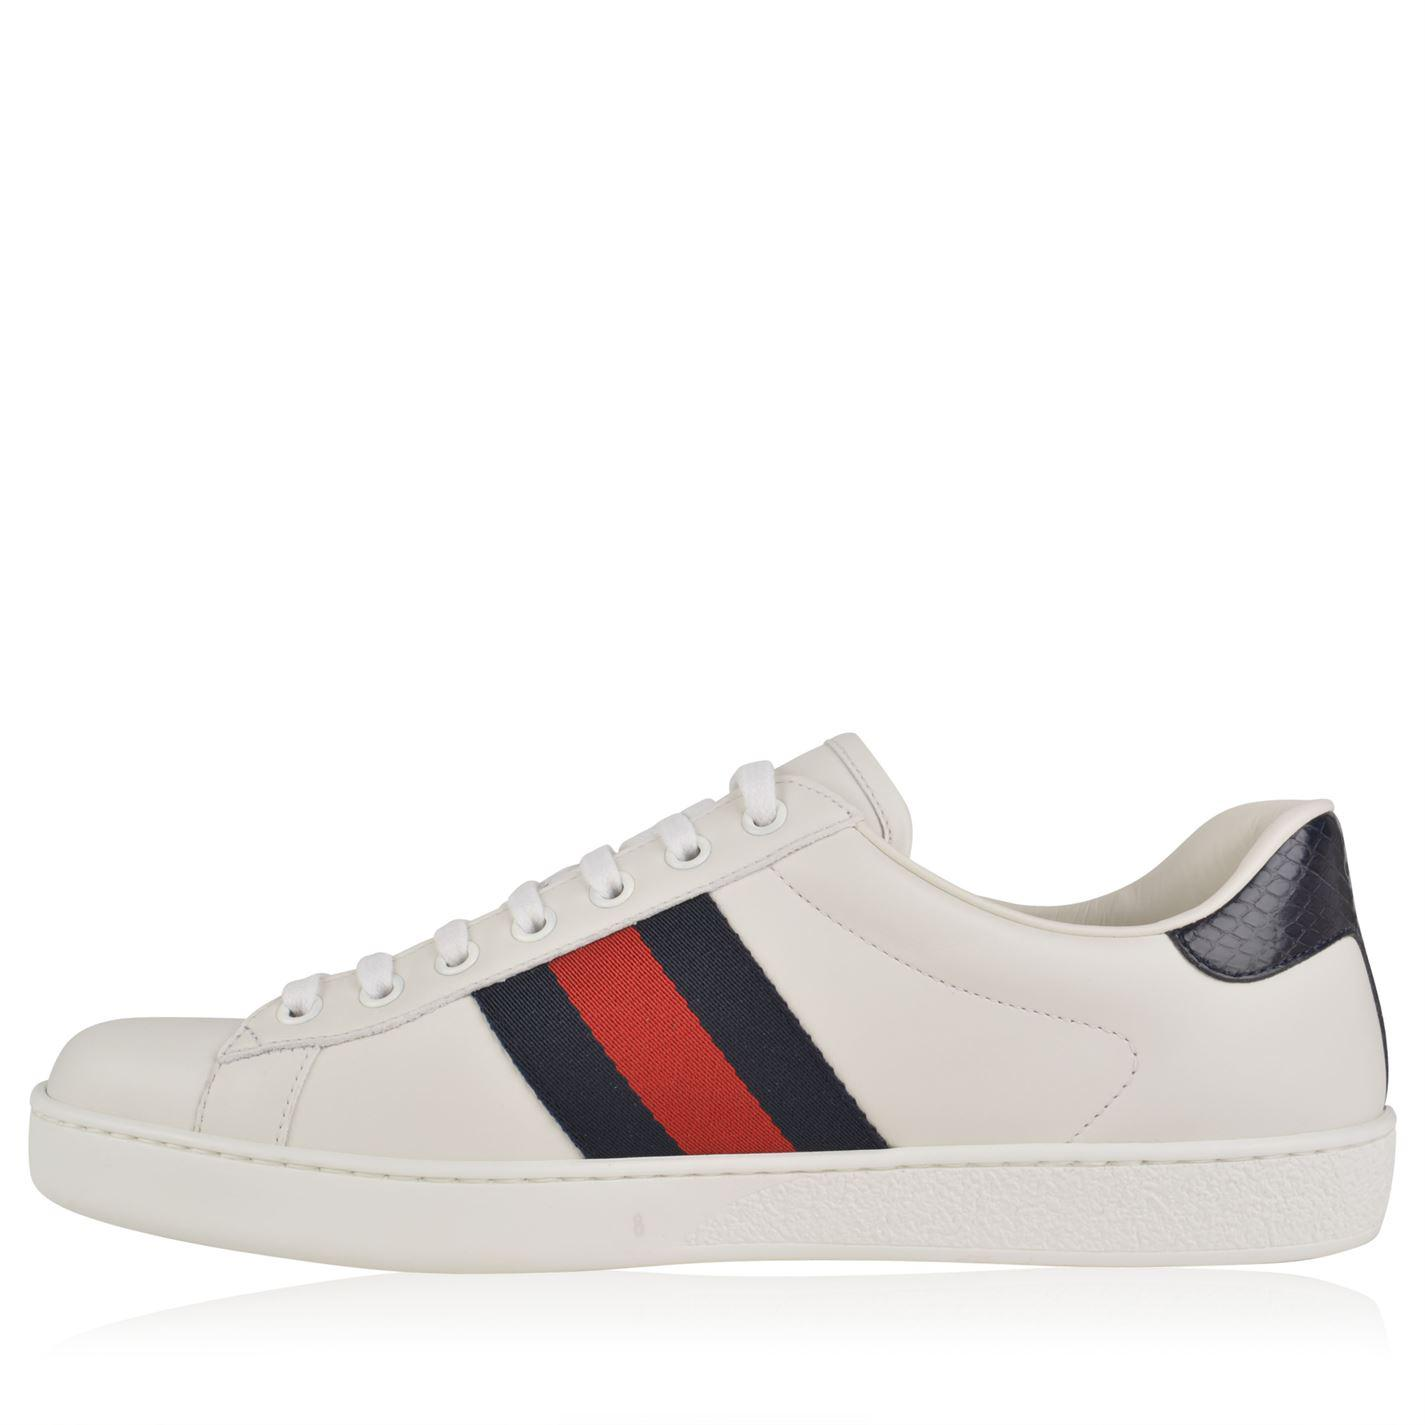 Gucci Leather New Ace Web Trainers in